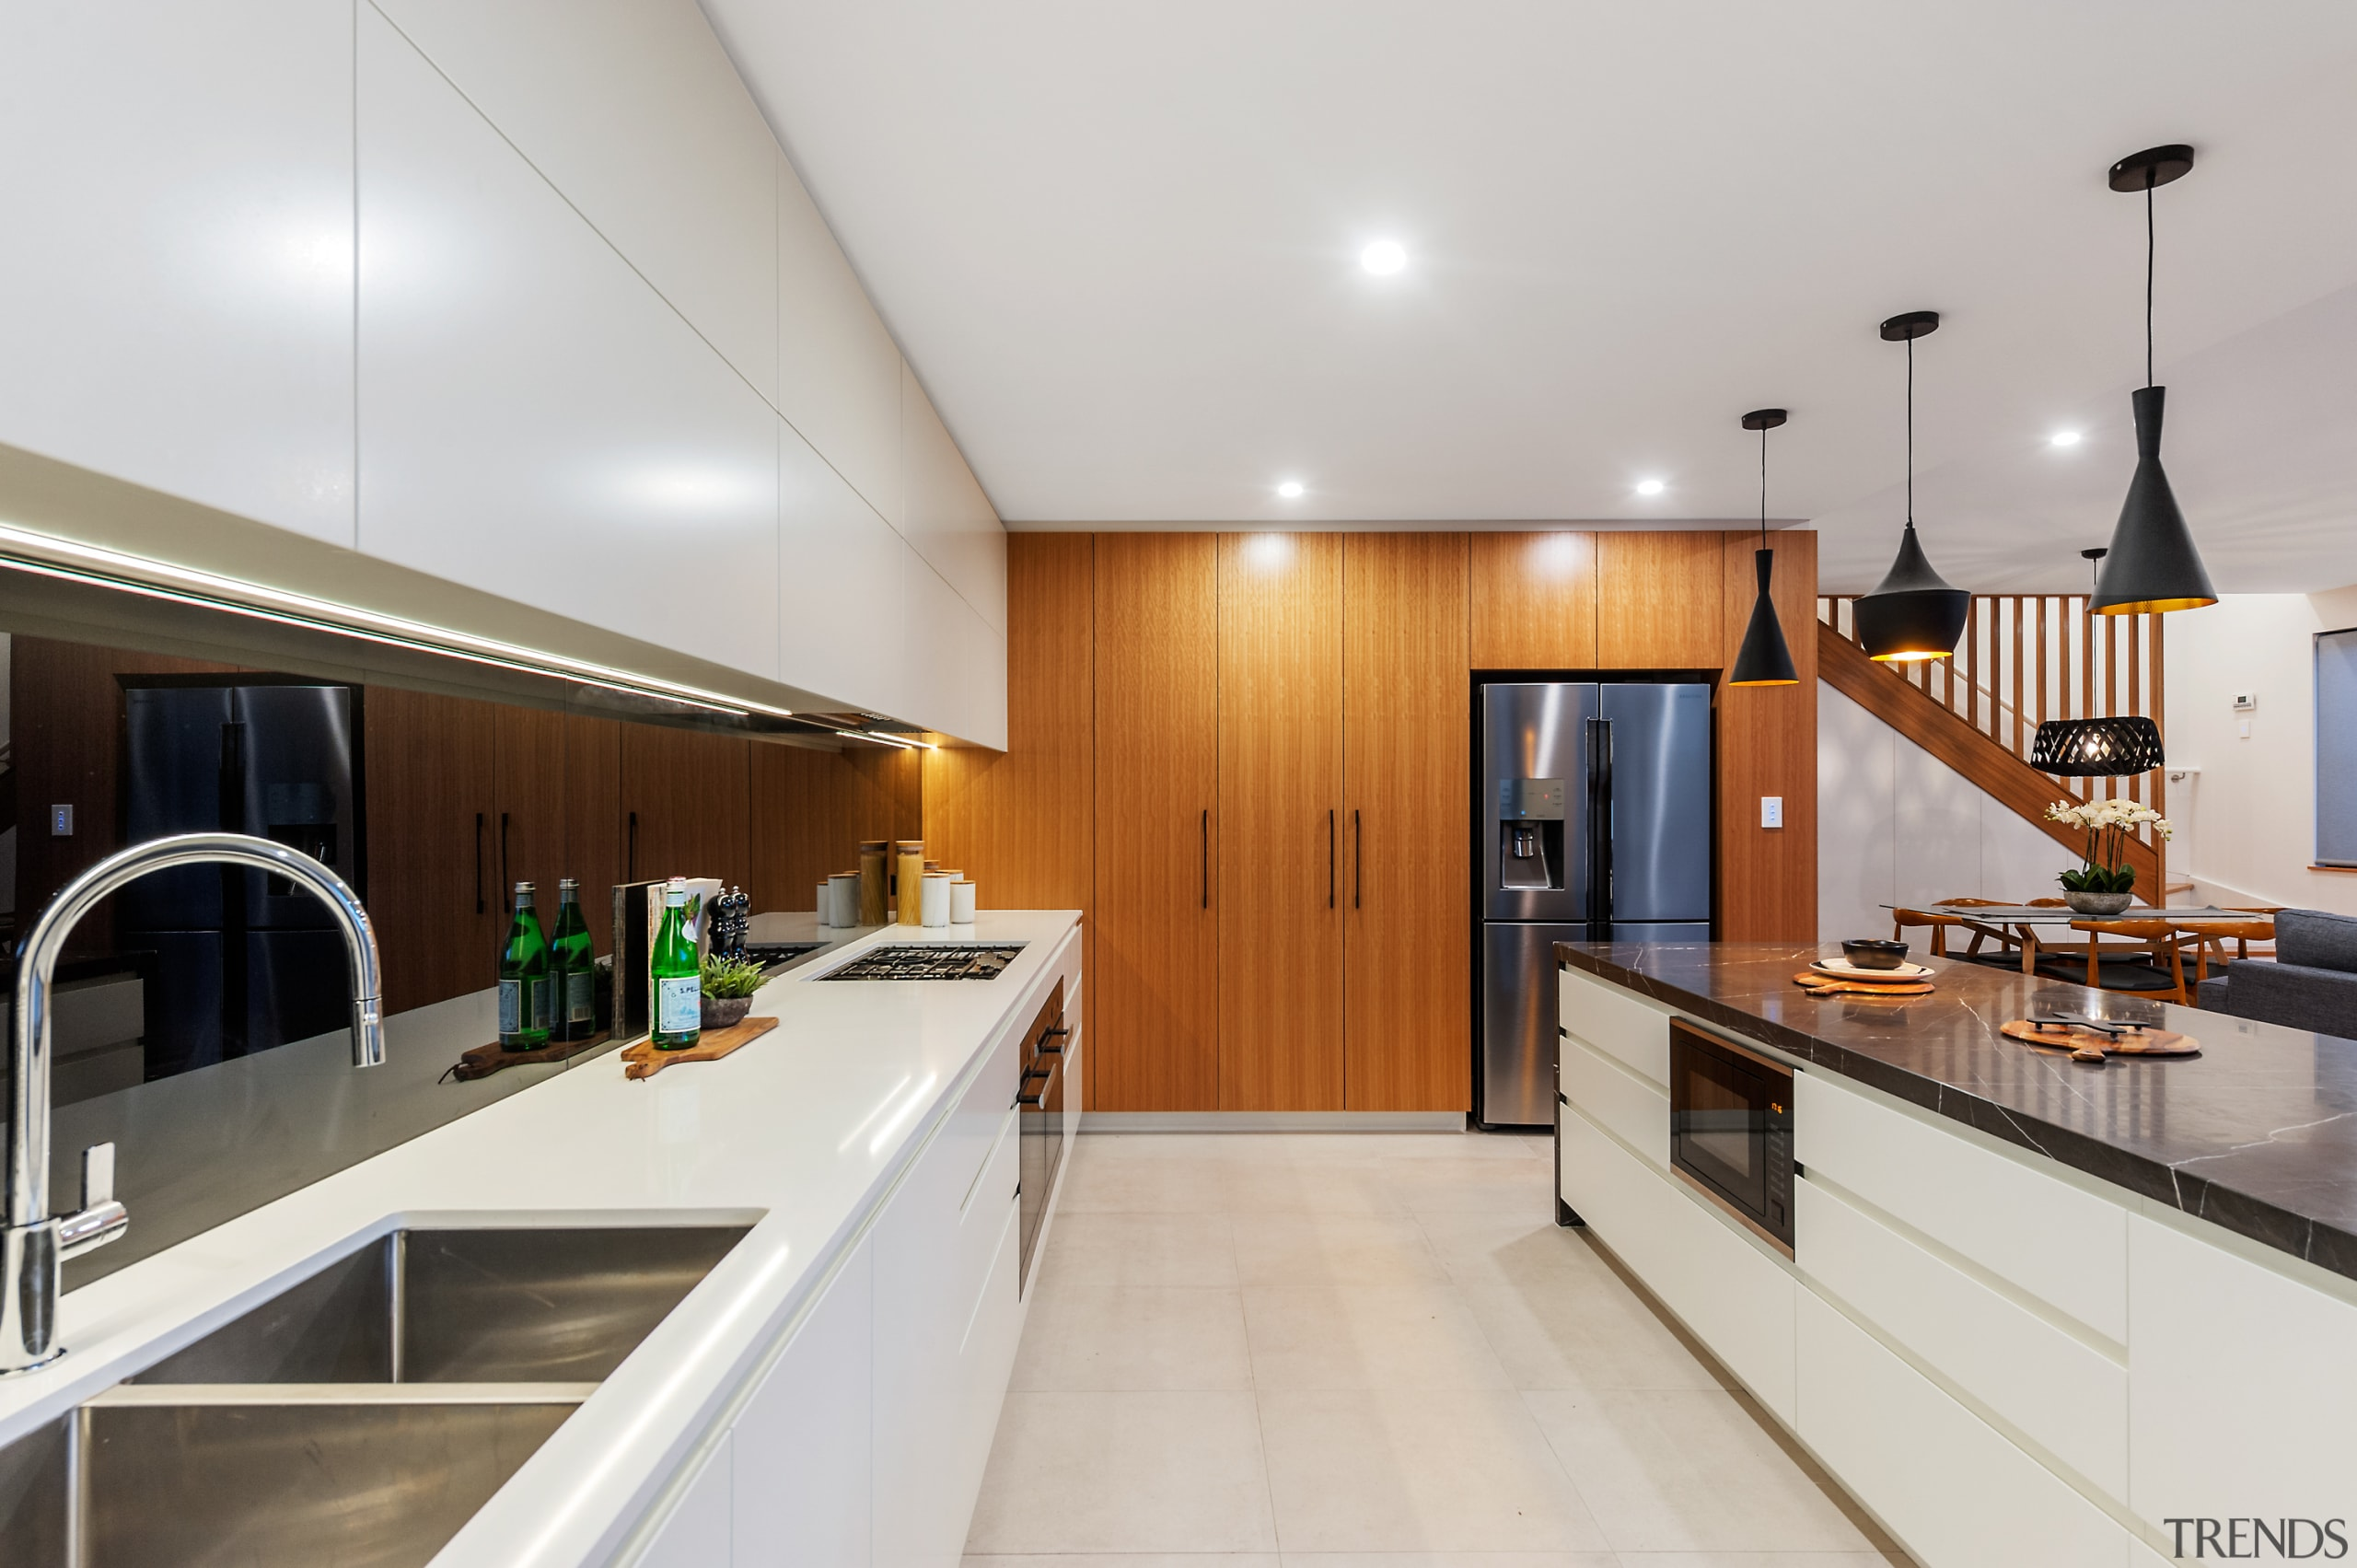 The kitchen is in centre of house relative apartment, architecture, building, cabinetry, ceiling, countertop, design, floor, flooring, furniture, hardwood, home, house, interior design, kitchen, loft, property, real estate, room, wood, wood flooring, gray